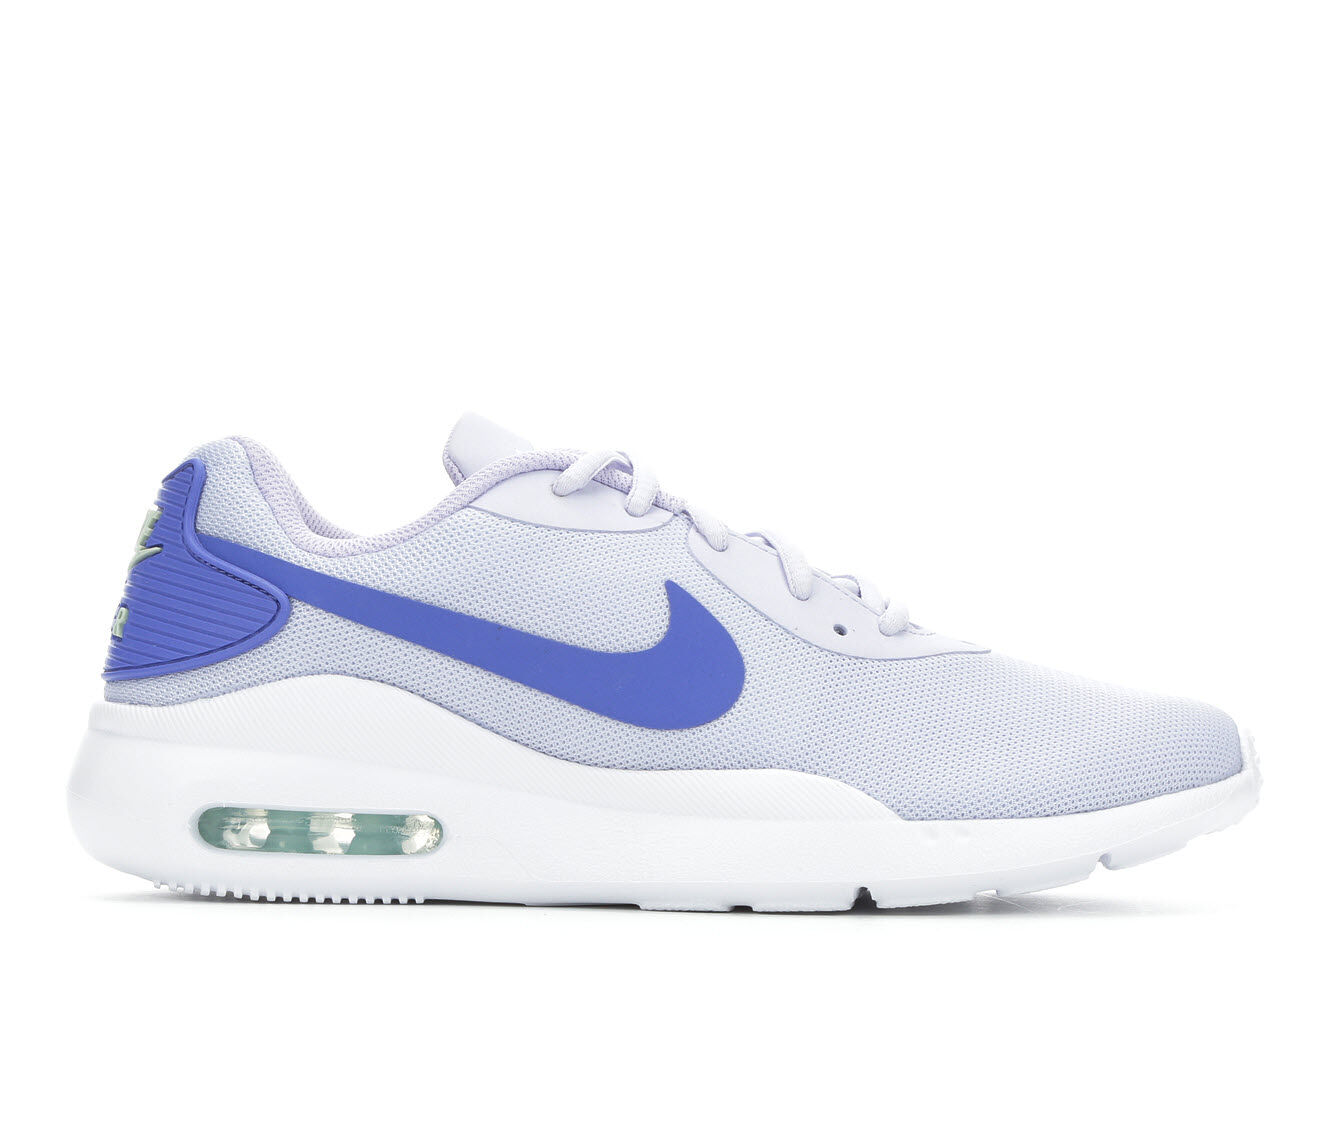 Women's Nike Air Max Oketo Sneakers Purple/Teal/Wht